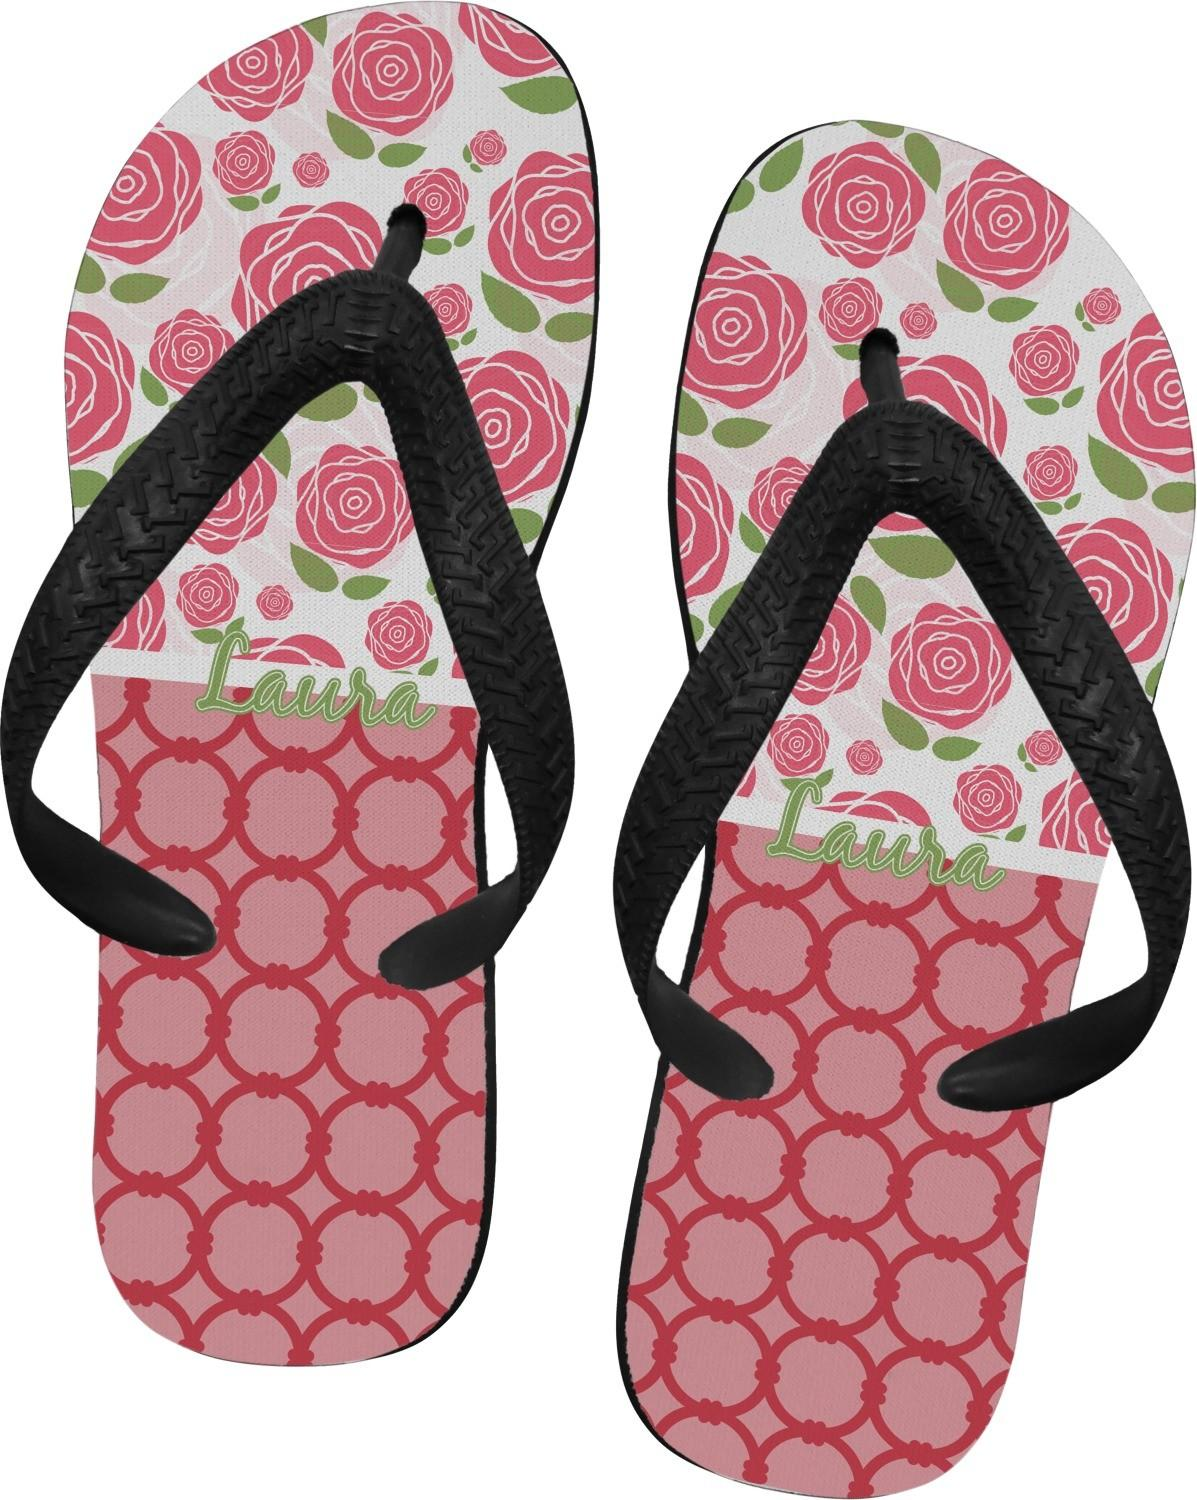 Roses Flip Flops Large Personalized Customize